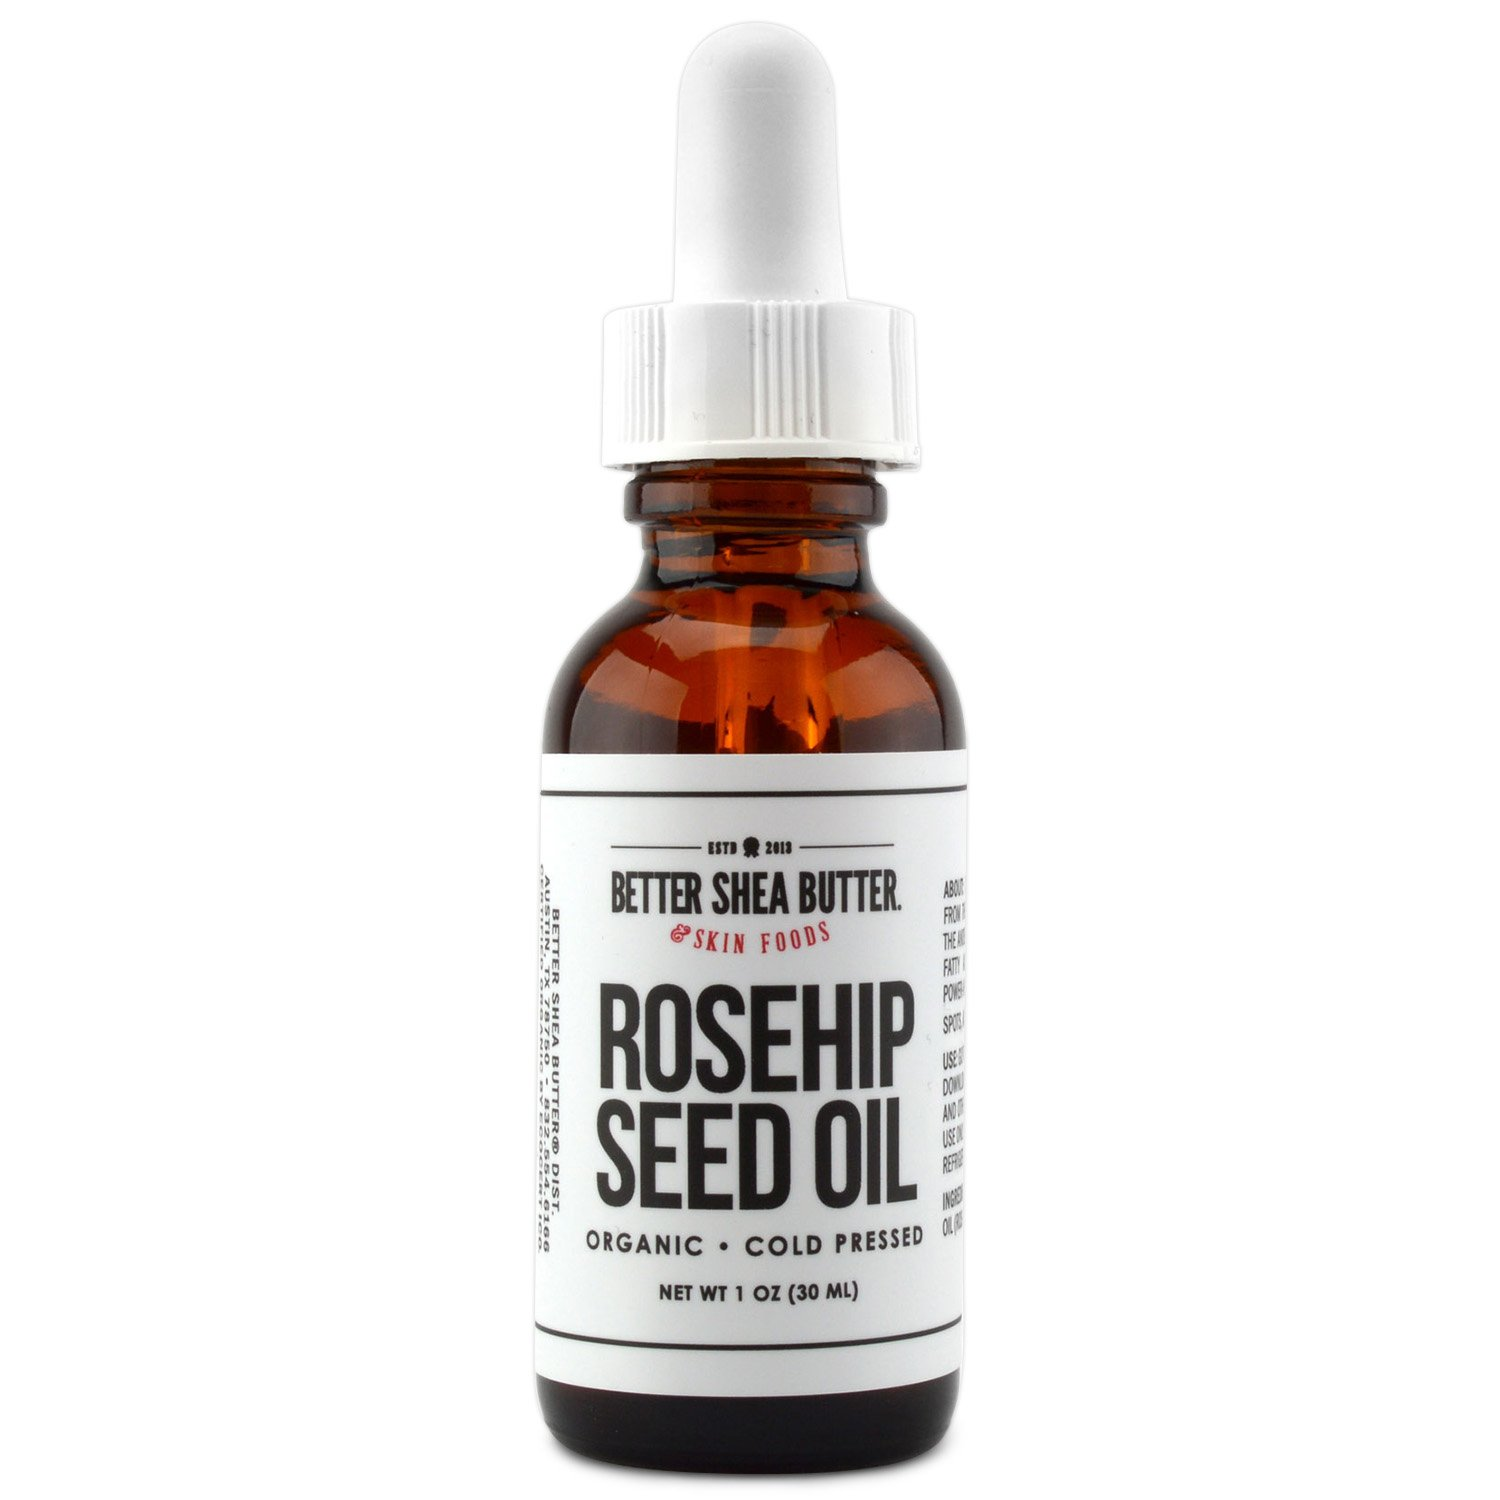 Organic Rosehip Seed Oil by Better Shea Butter - 1 oz